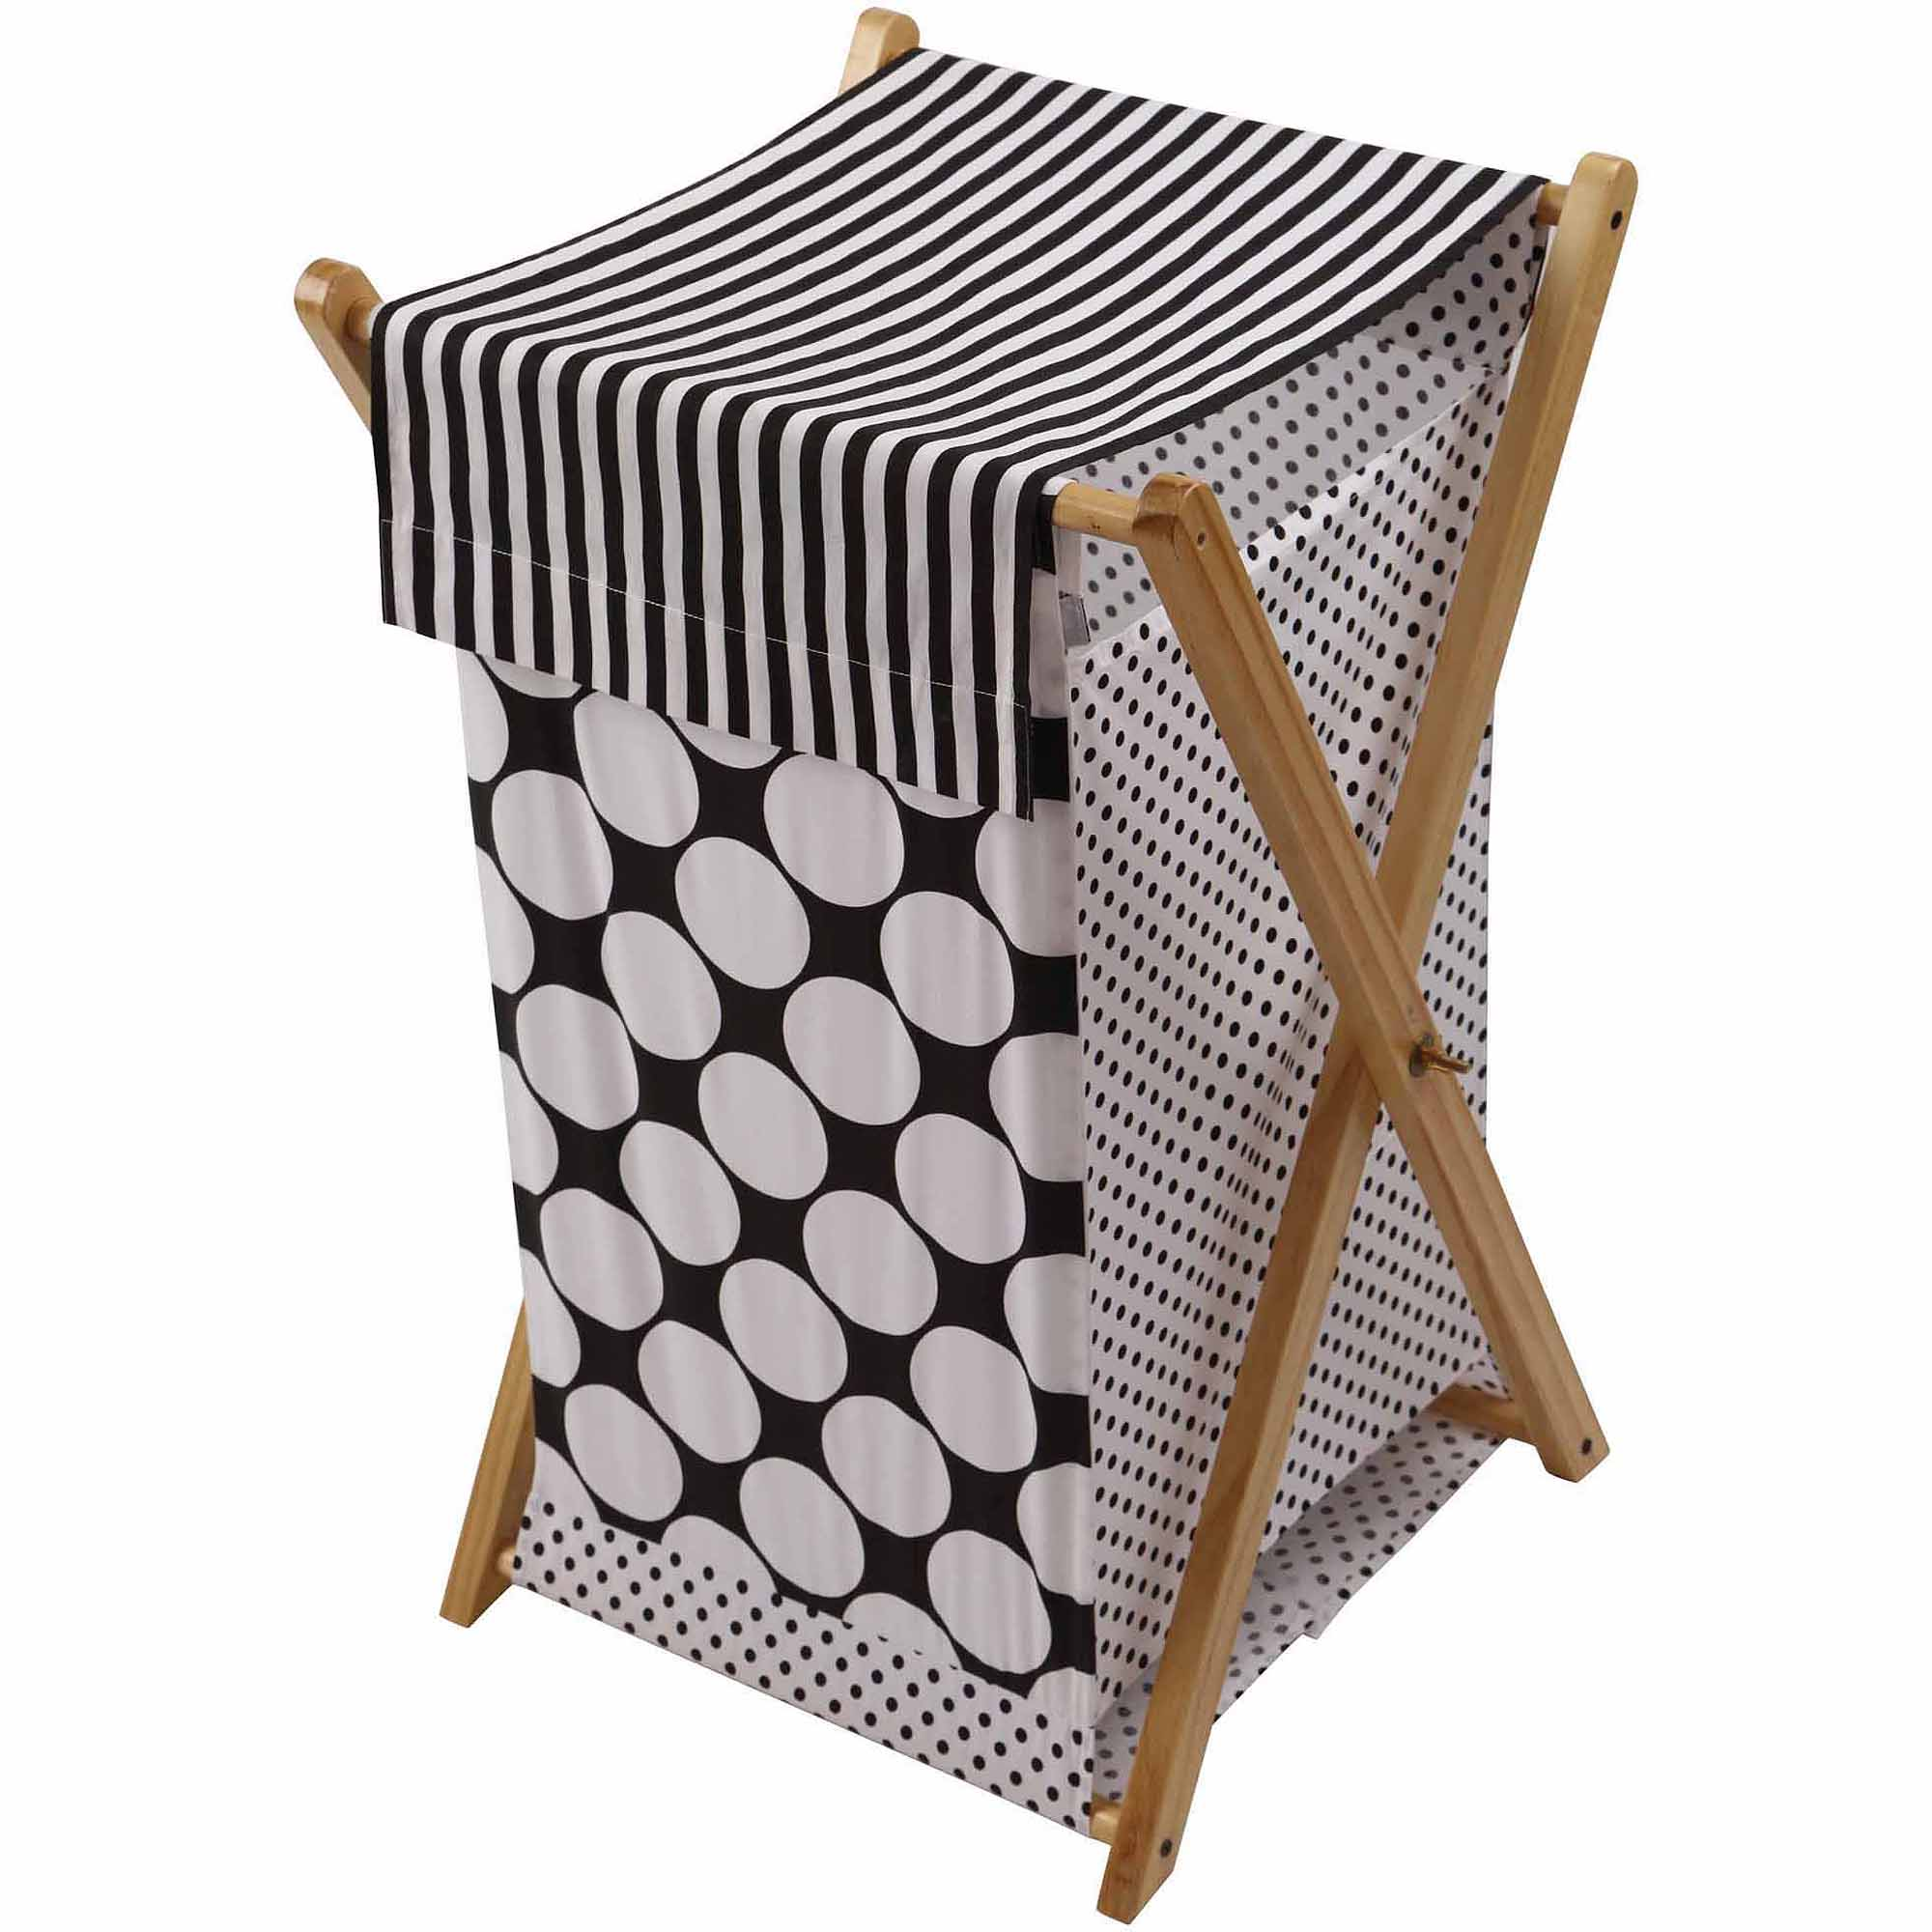 Bacati Dots Pin Stripes Hamper with Cotton Percale cover, mesh liner and Natural Color Wooden frame, Black White by Bacati